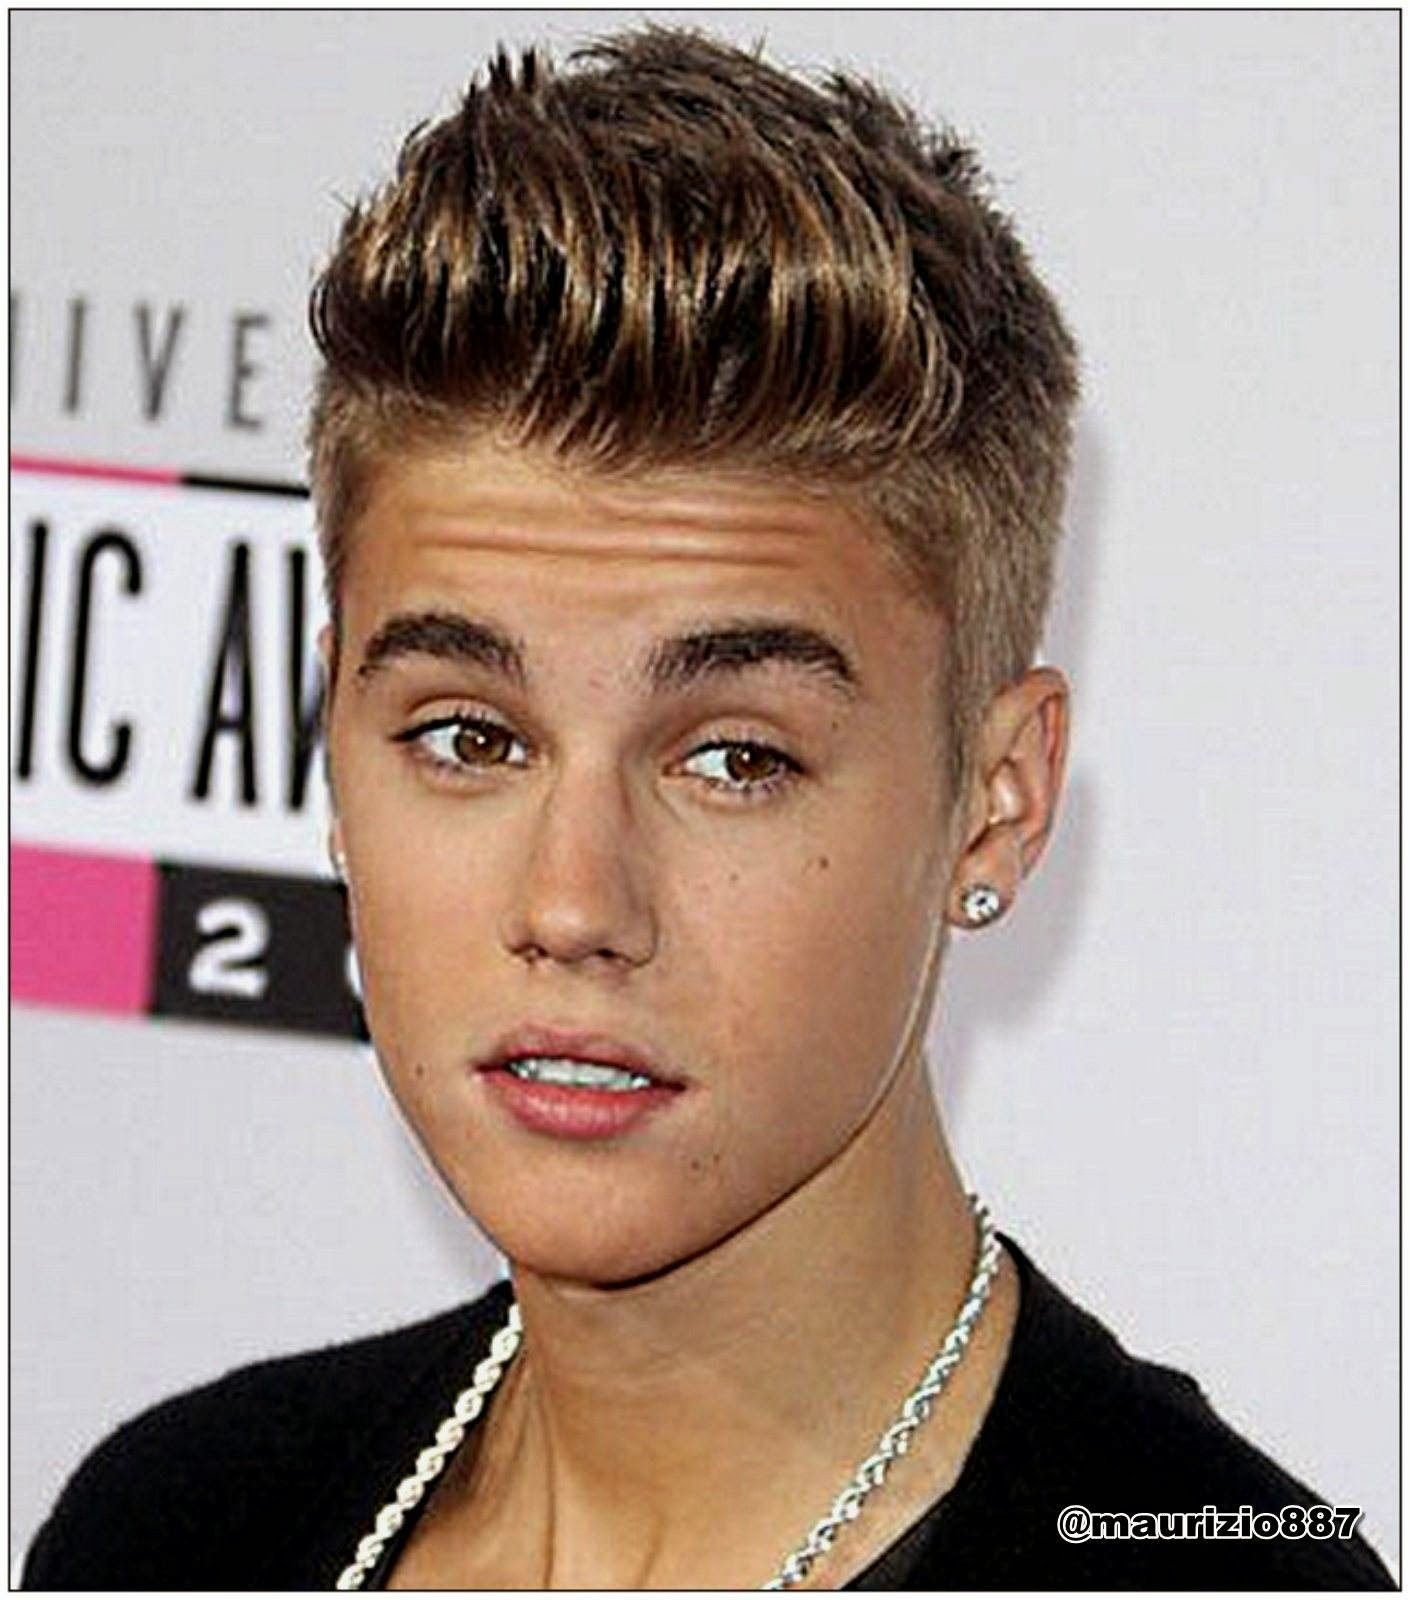 Justin Bieber Haircuts 2013 The Style Vacation